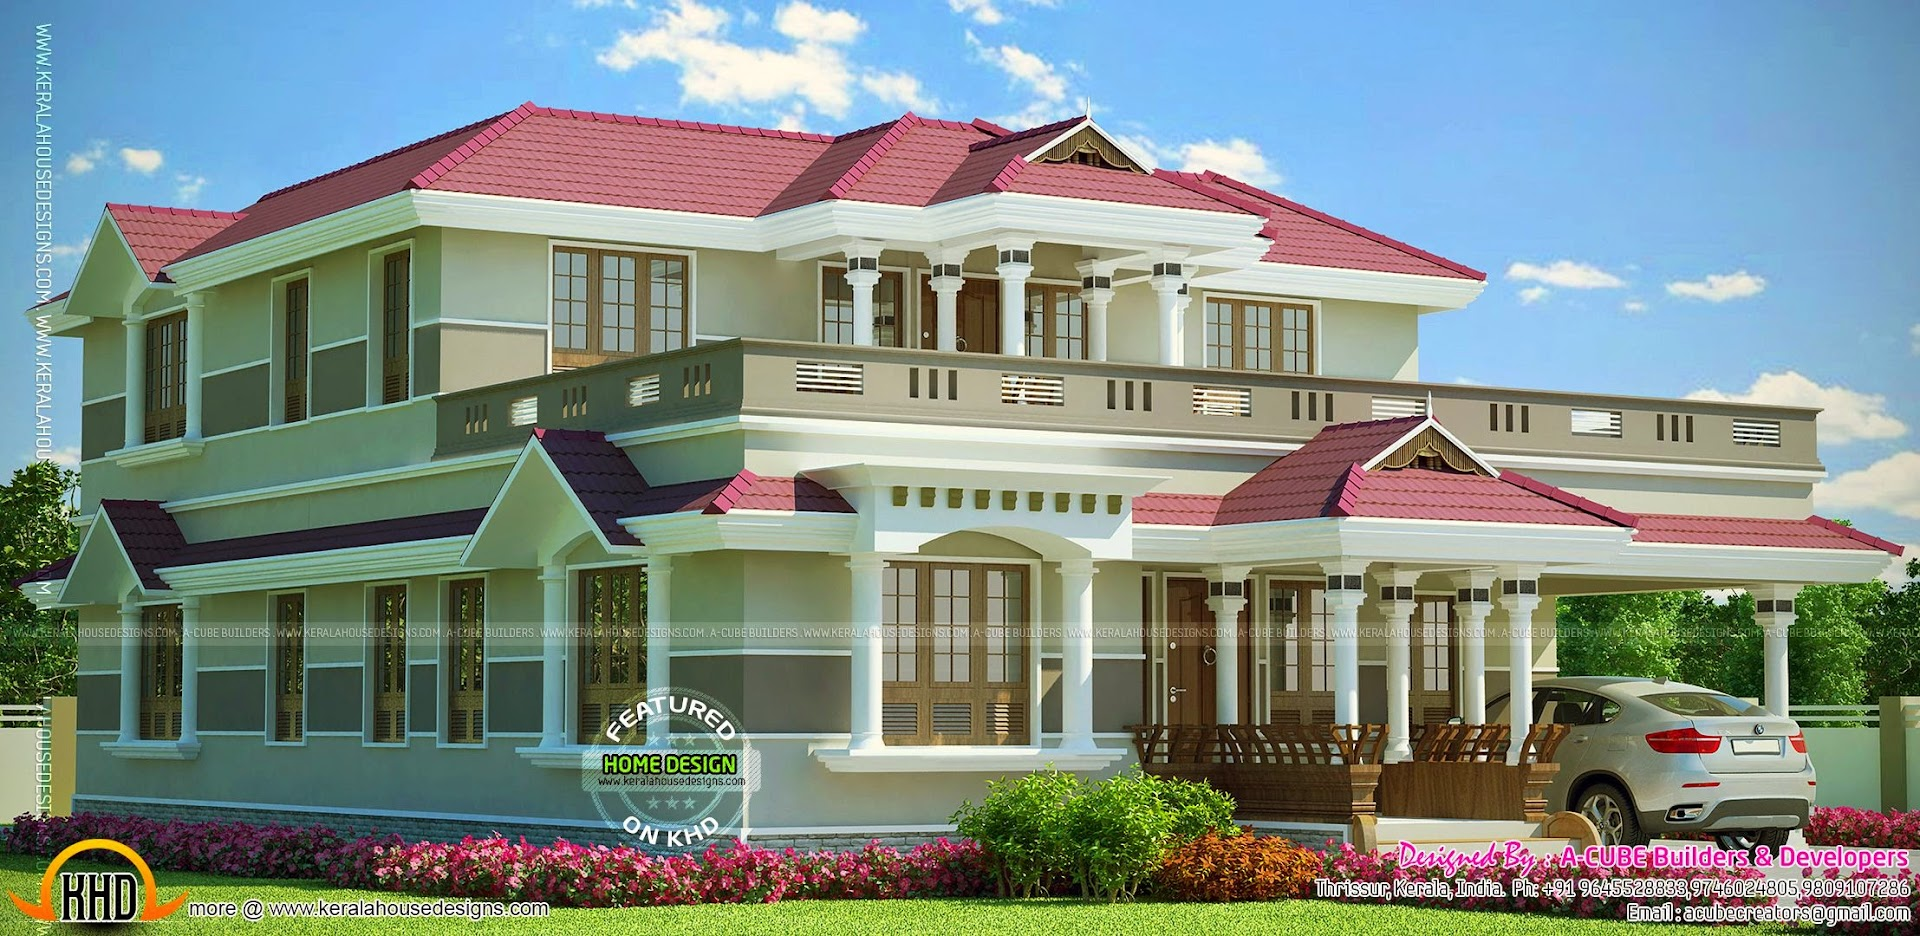 Grand Kerala home design. November 2014   Kerala home design and floor plans